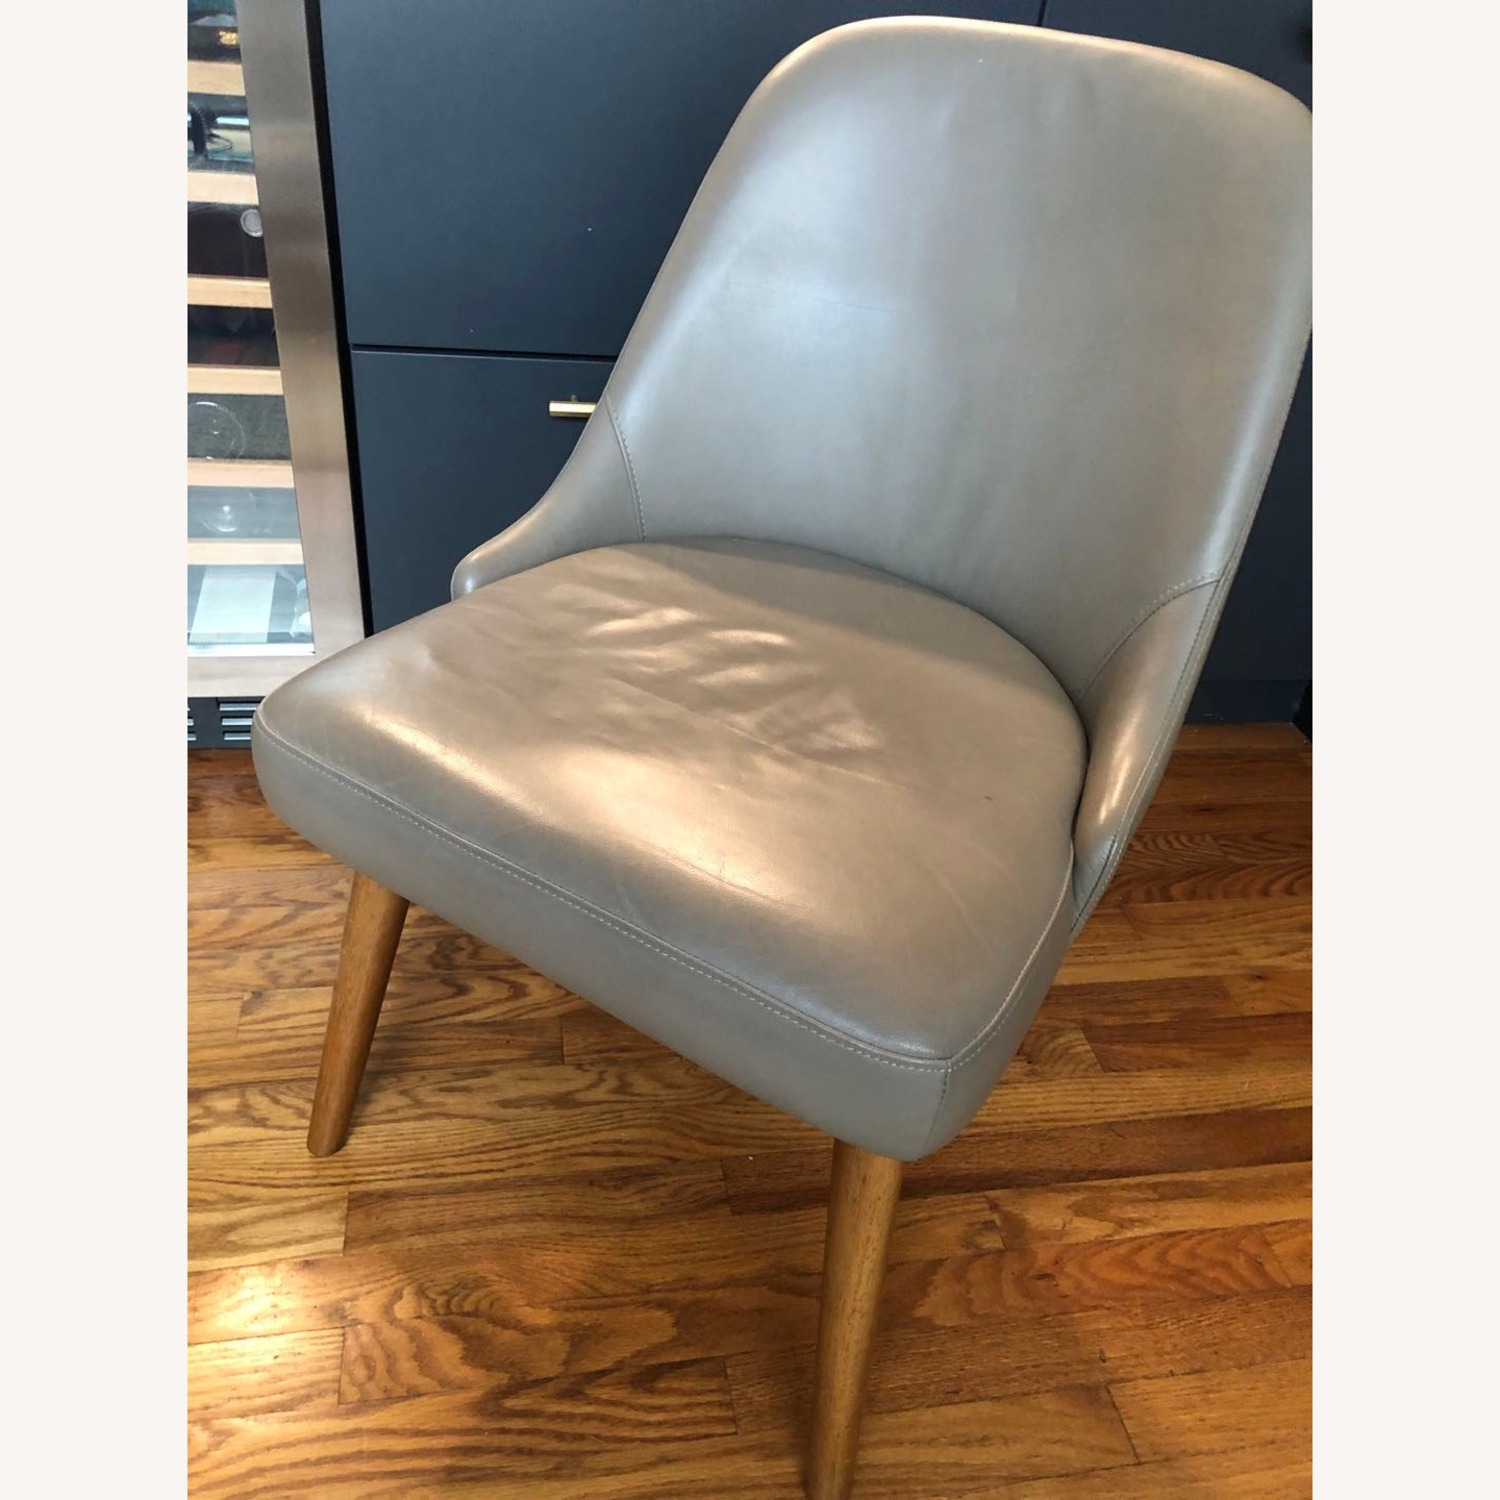 West Elm Mid Century Upholster Chair - image-1